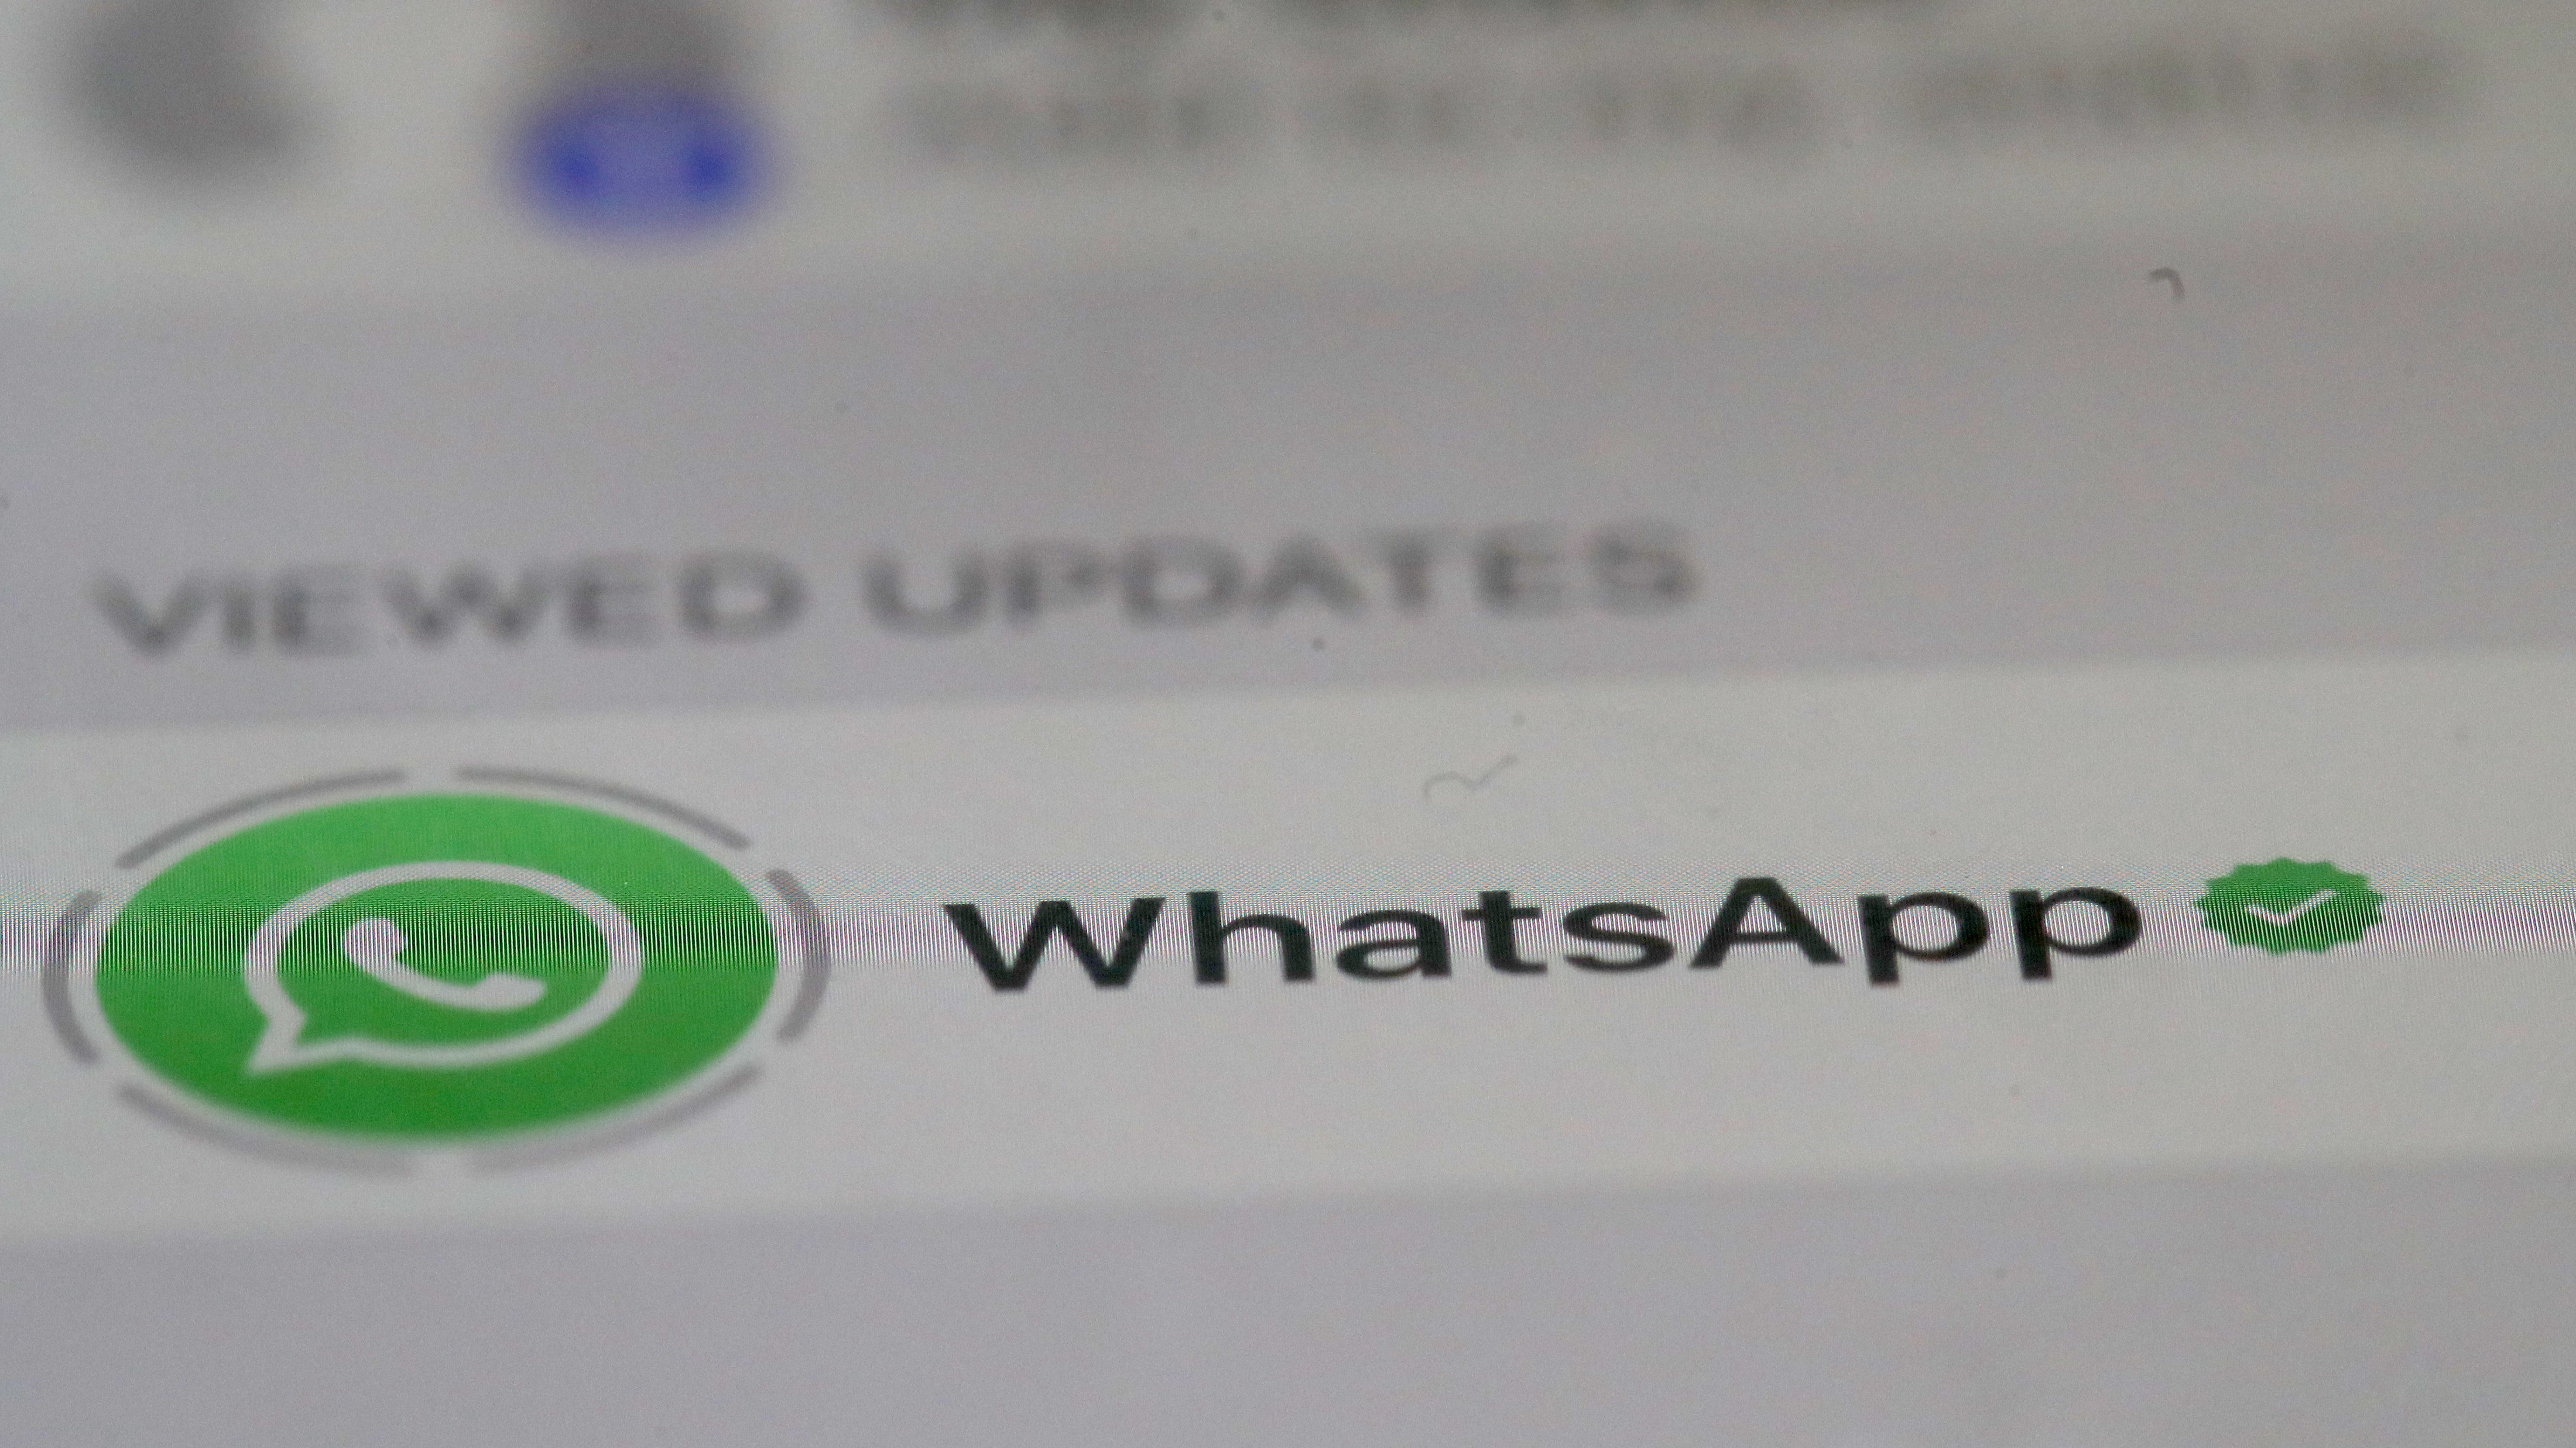 WhatsApp Vulnerability Could Have Allowed Attackers To Hijack Phones Using Malicious GIFs